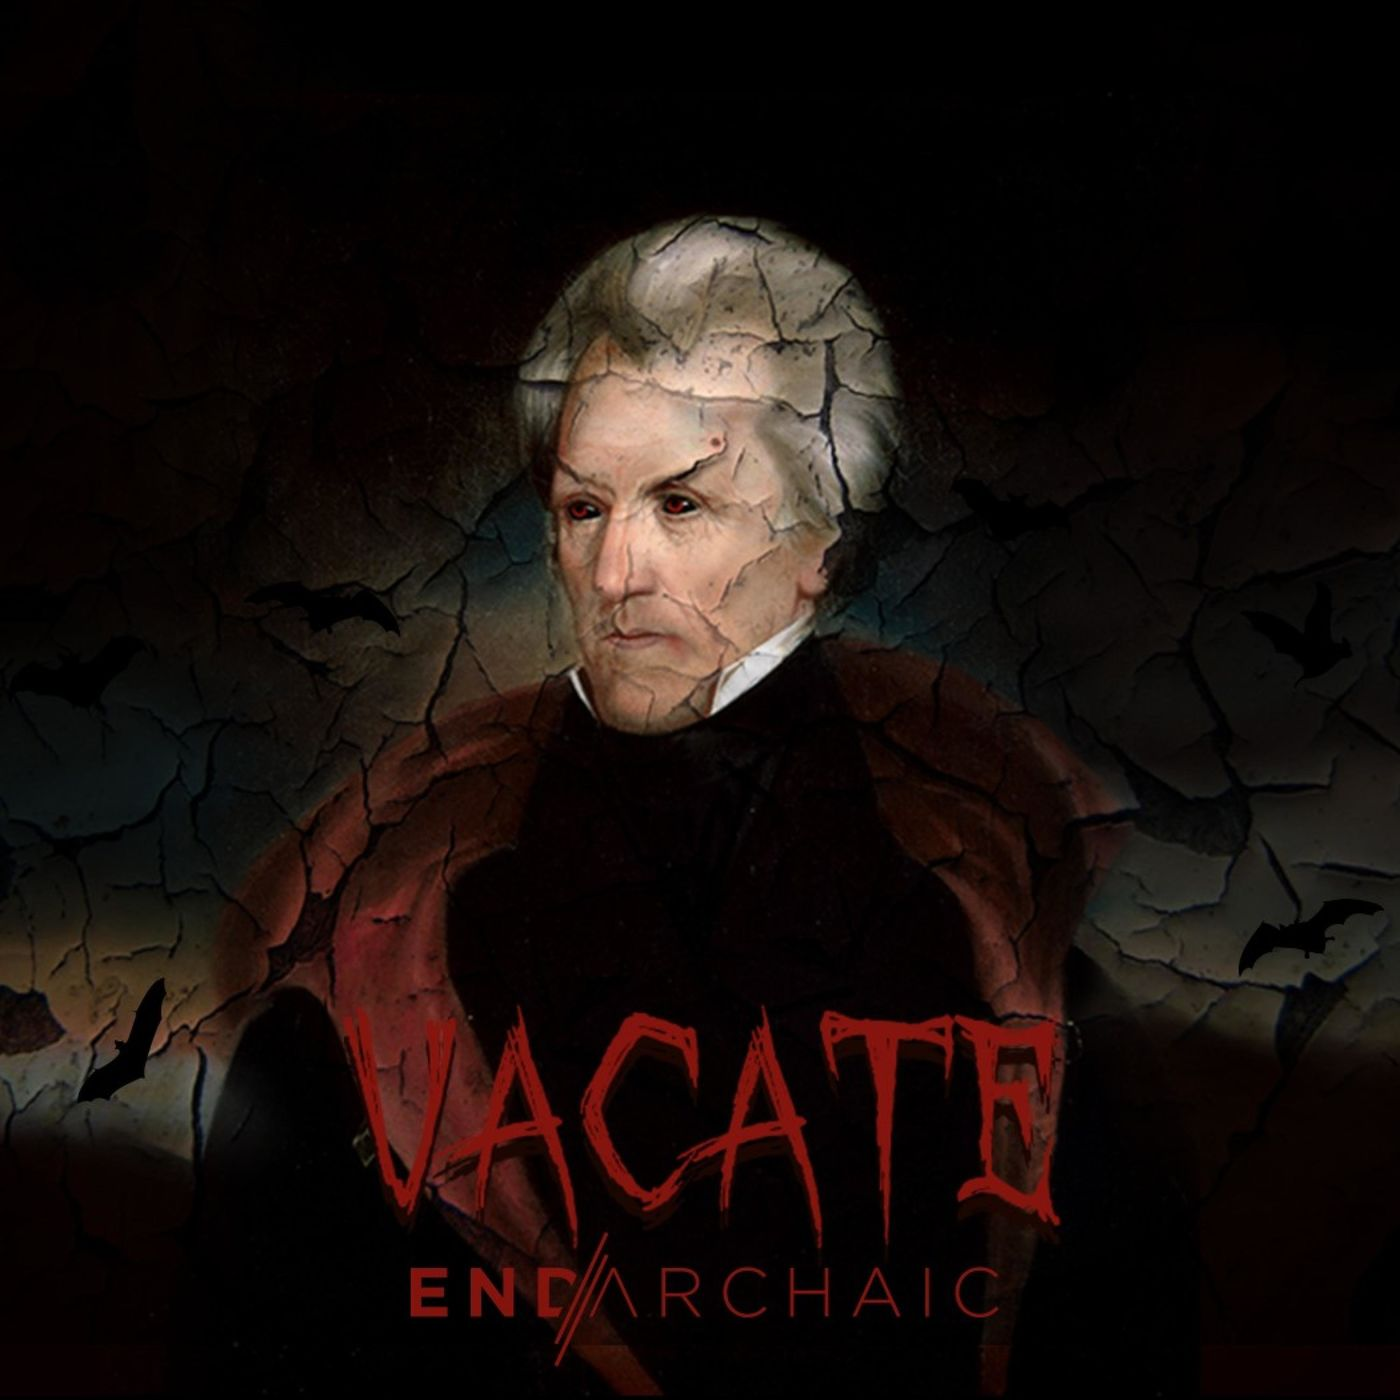 End Archaic - Vacate [single] (2020)